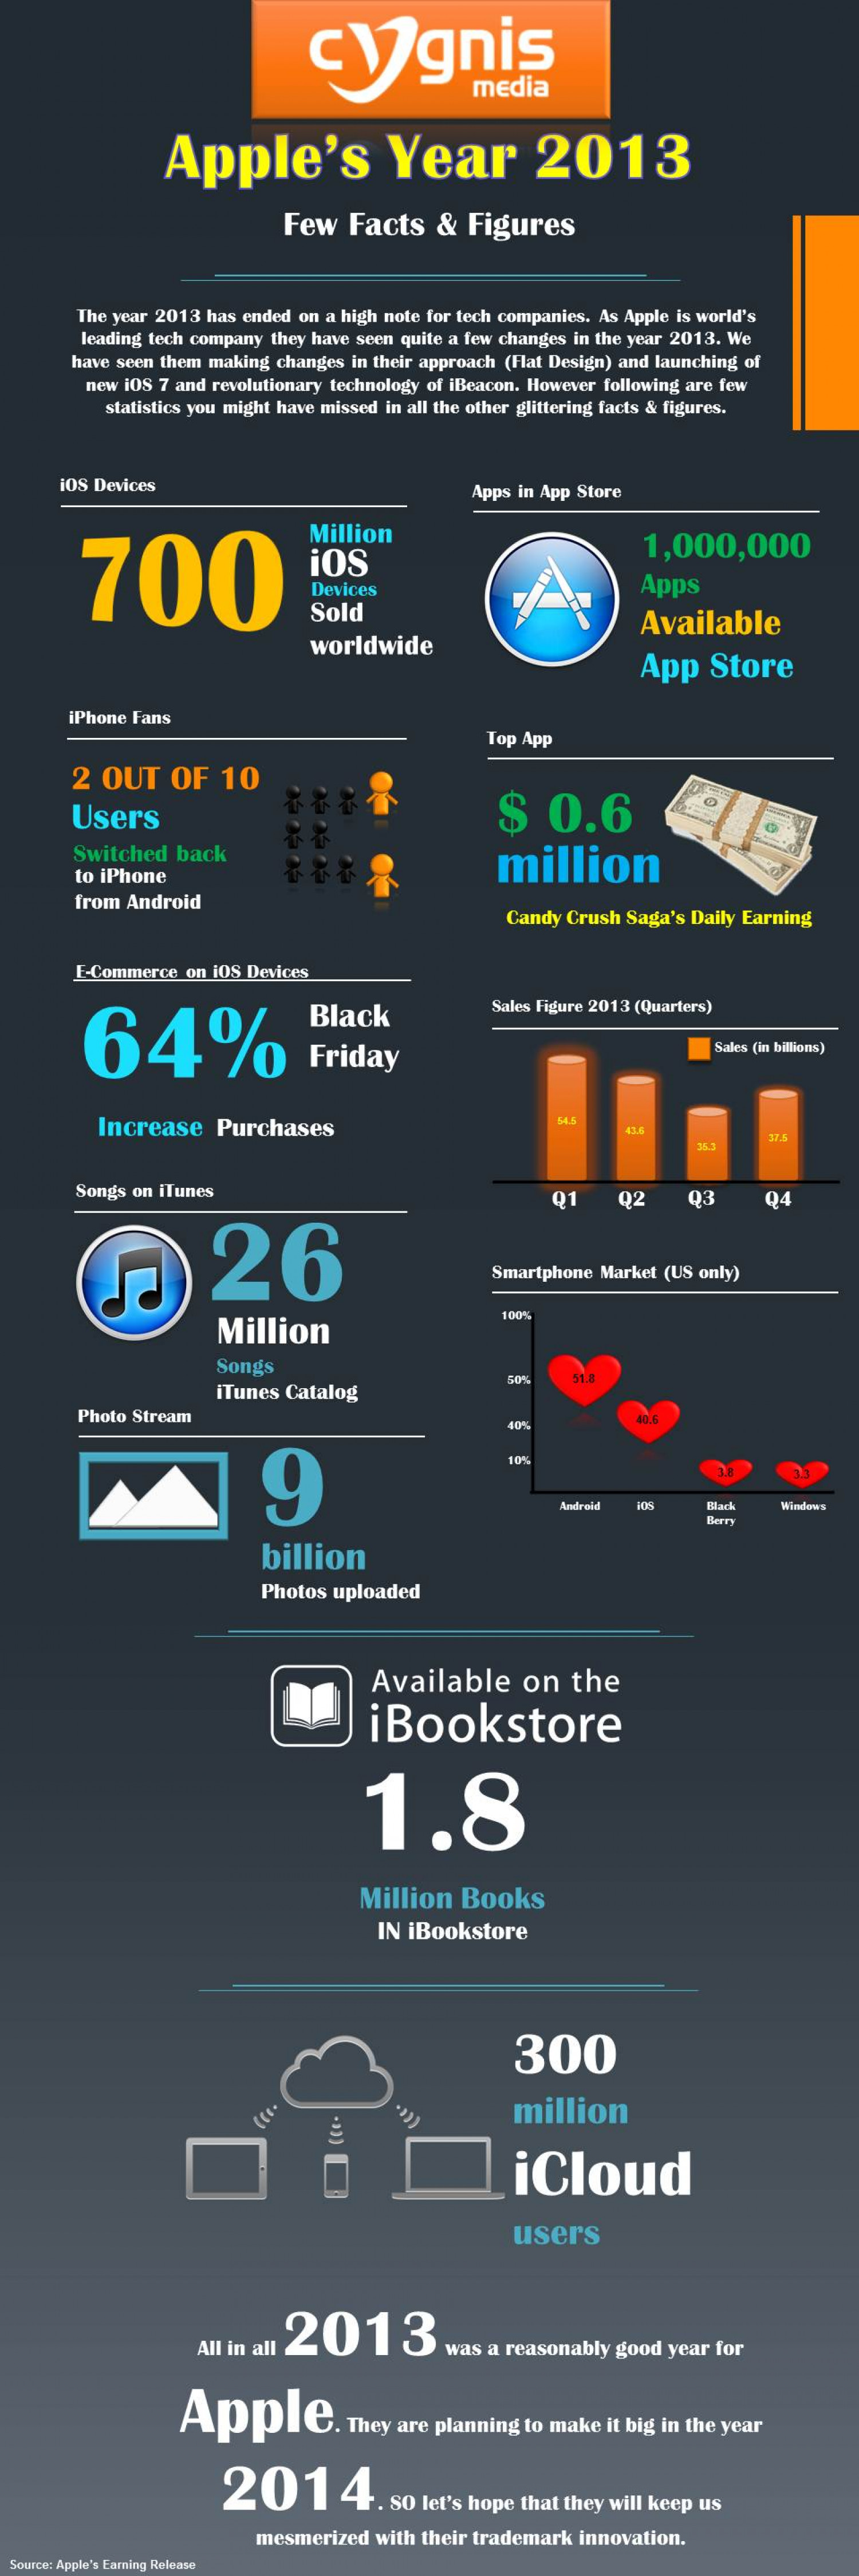 Apple App Store and Development in 2013 Infographic